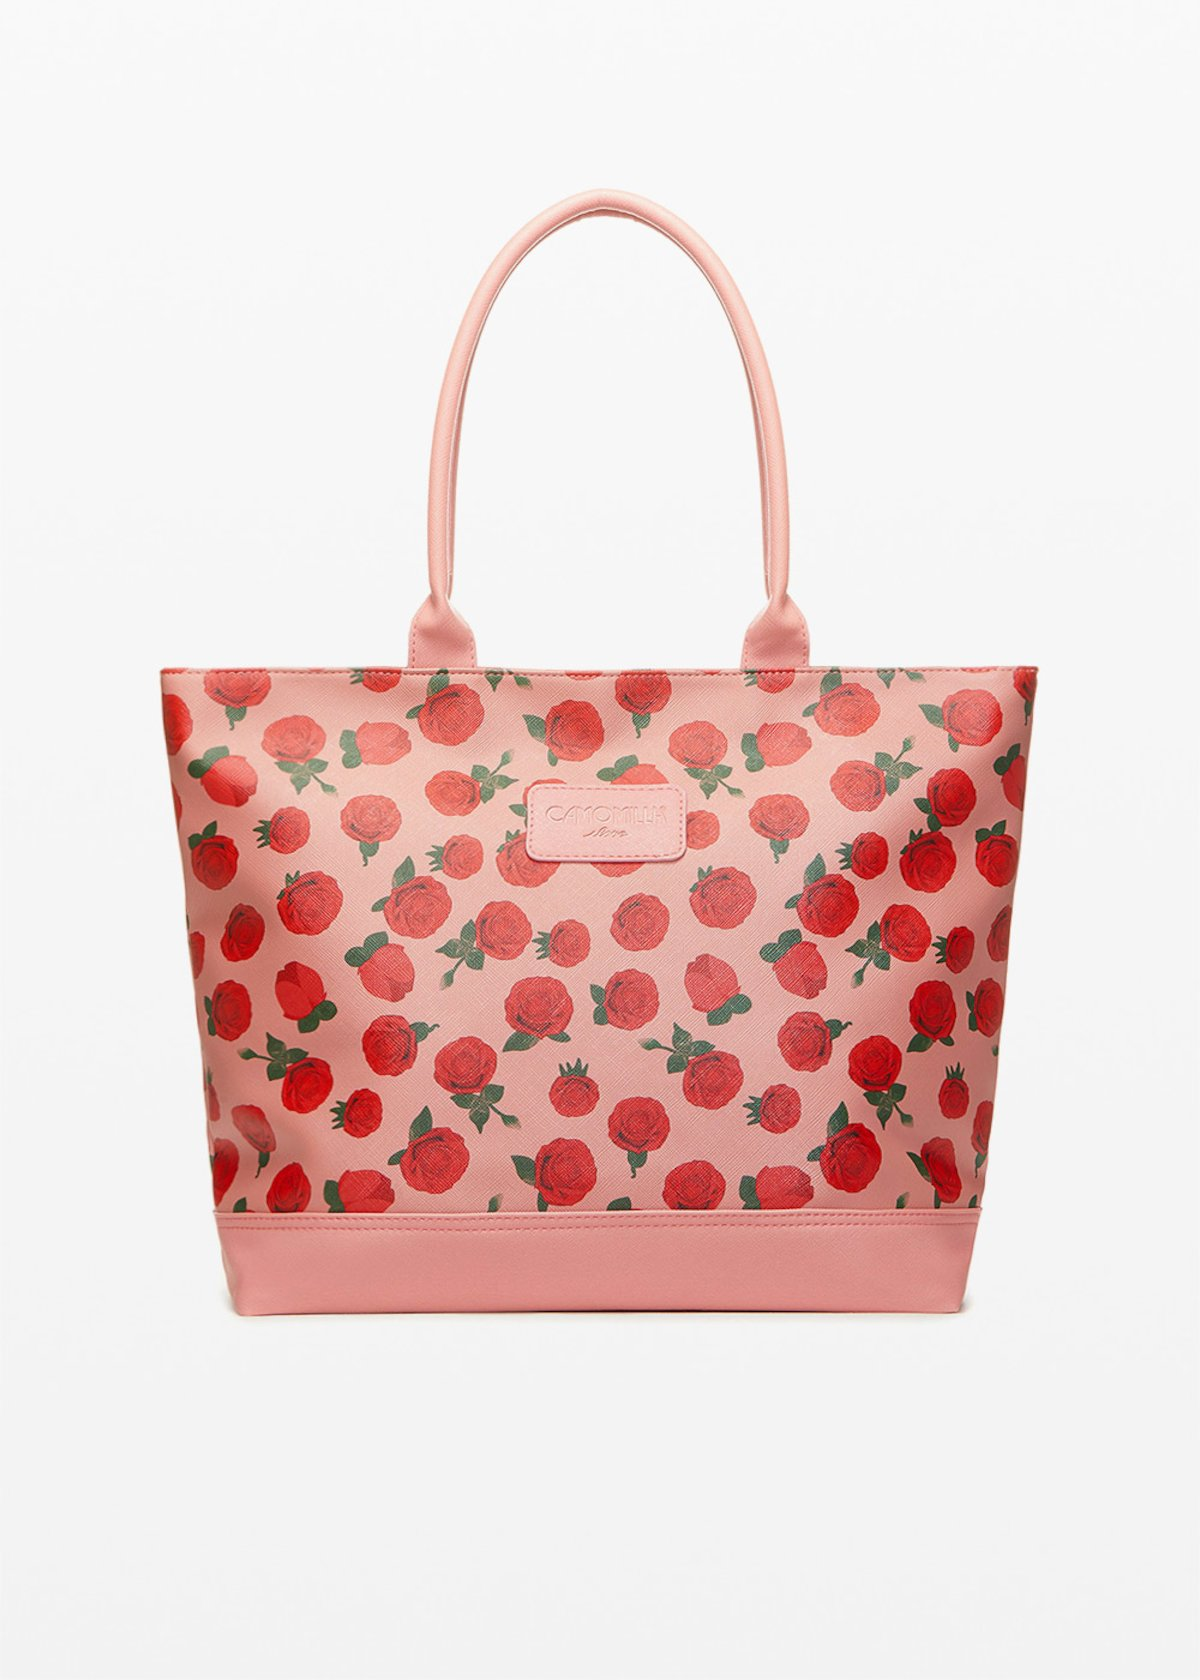 Trendros6 faux leather shopping bag with roses print